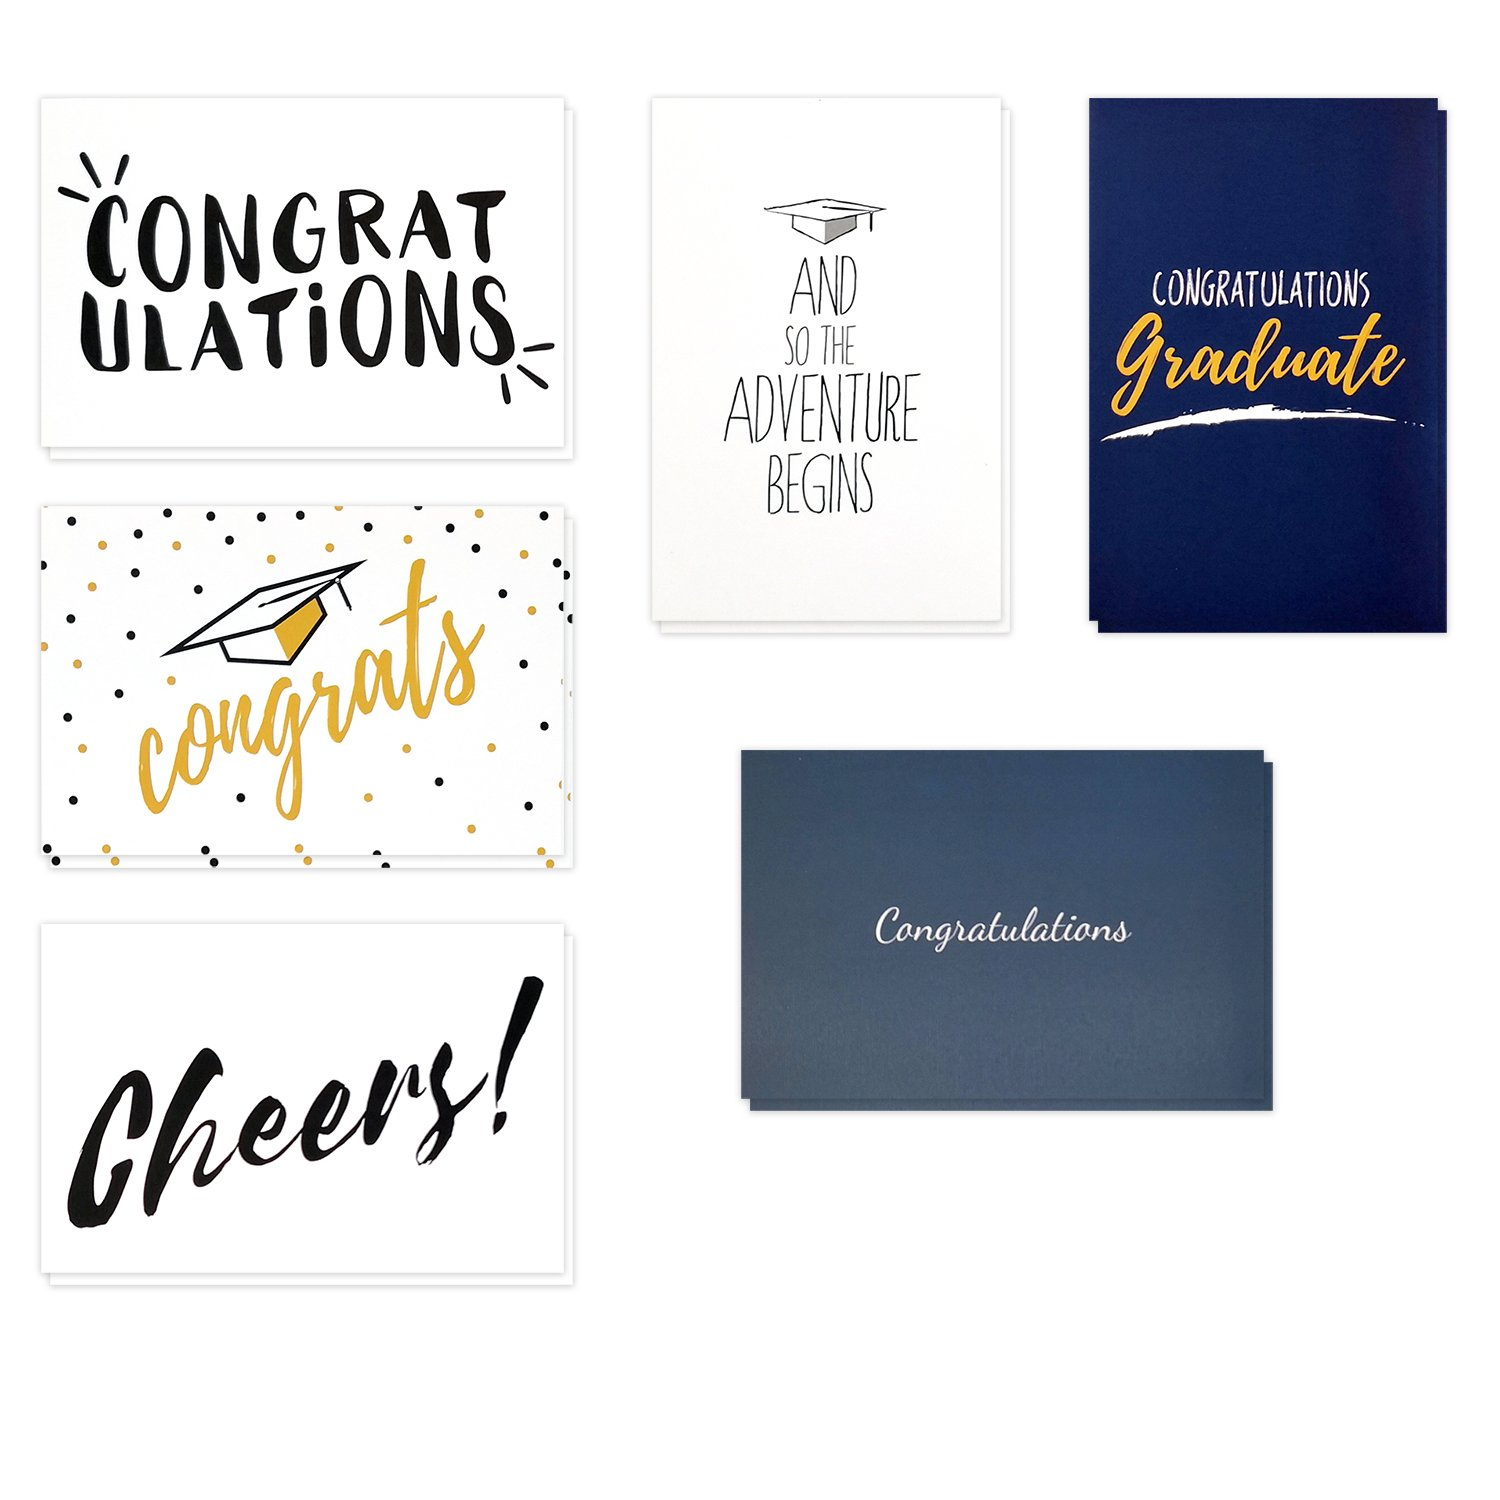 Graduation Cards, College and High School Graduation Cards, Graduation Cards 36 Pack, Congratulations Cards Bulk Graduation Cards, Blank Graduation Cards - Envelopes Included, 4x6 Inches Each